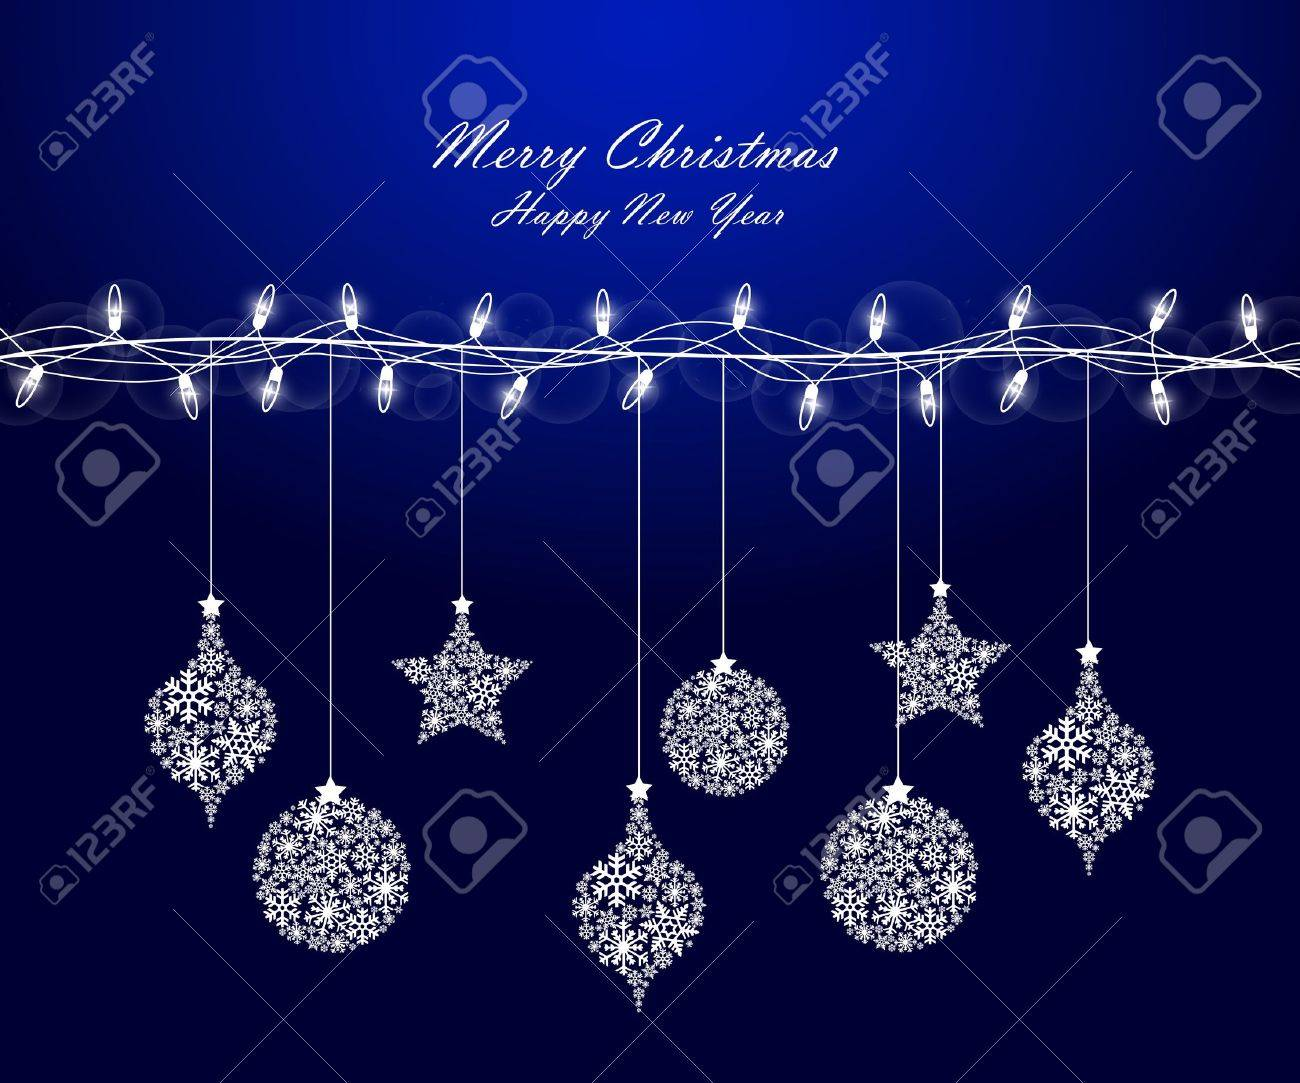 Background of Christmas lights with decorations Stock Vector - 11093178